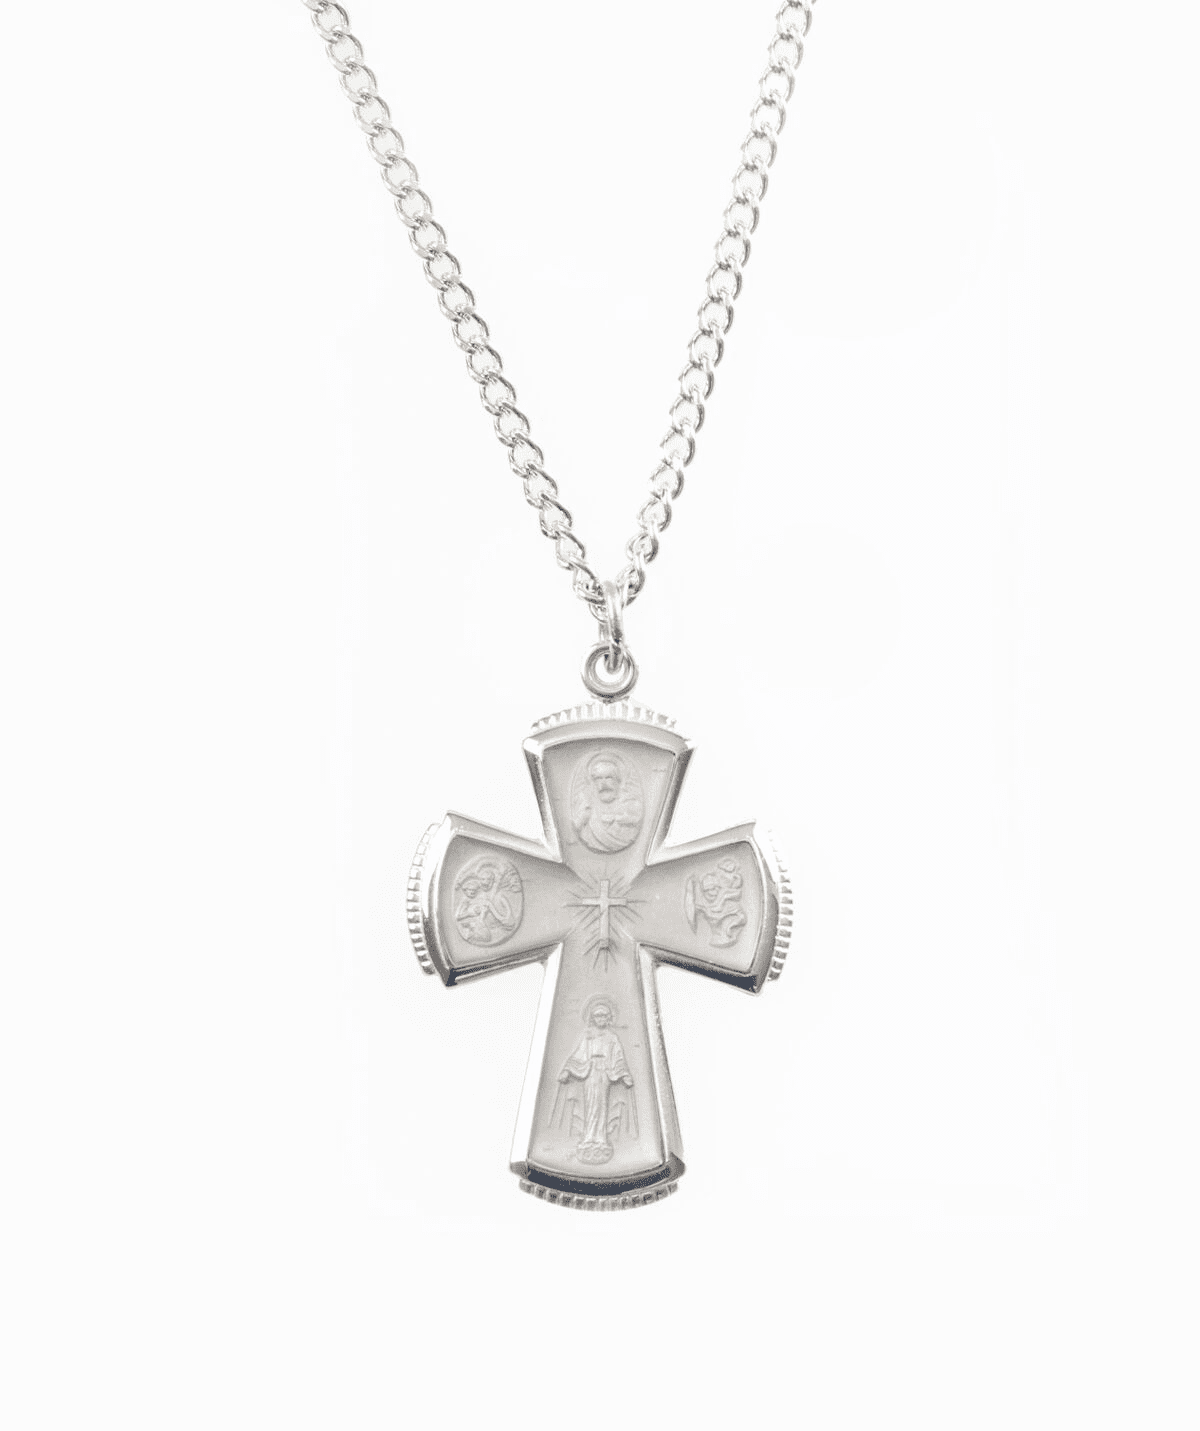 Jeweled Cross 4 Way Catholic Crosses and Christian Jewelry